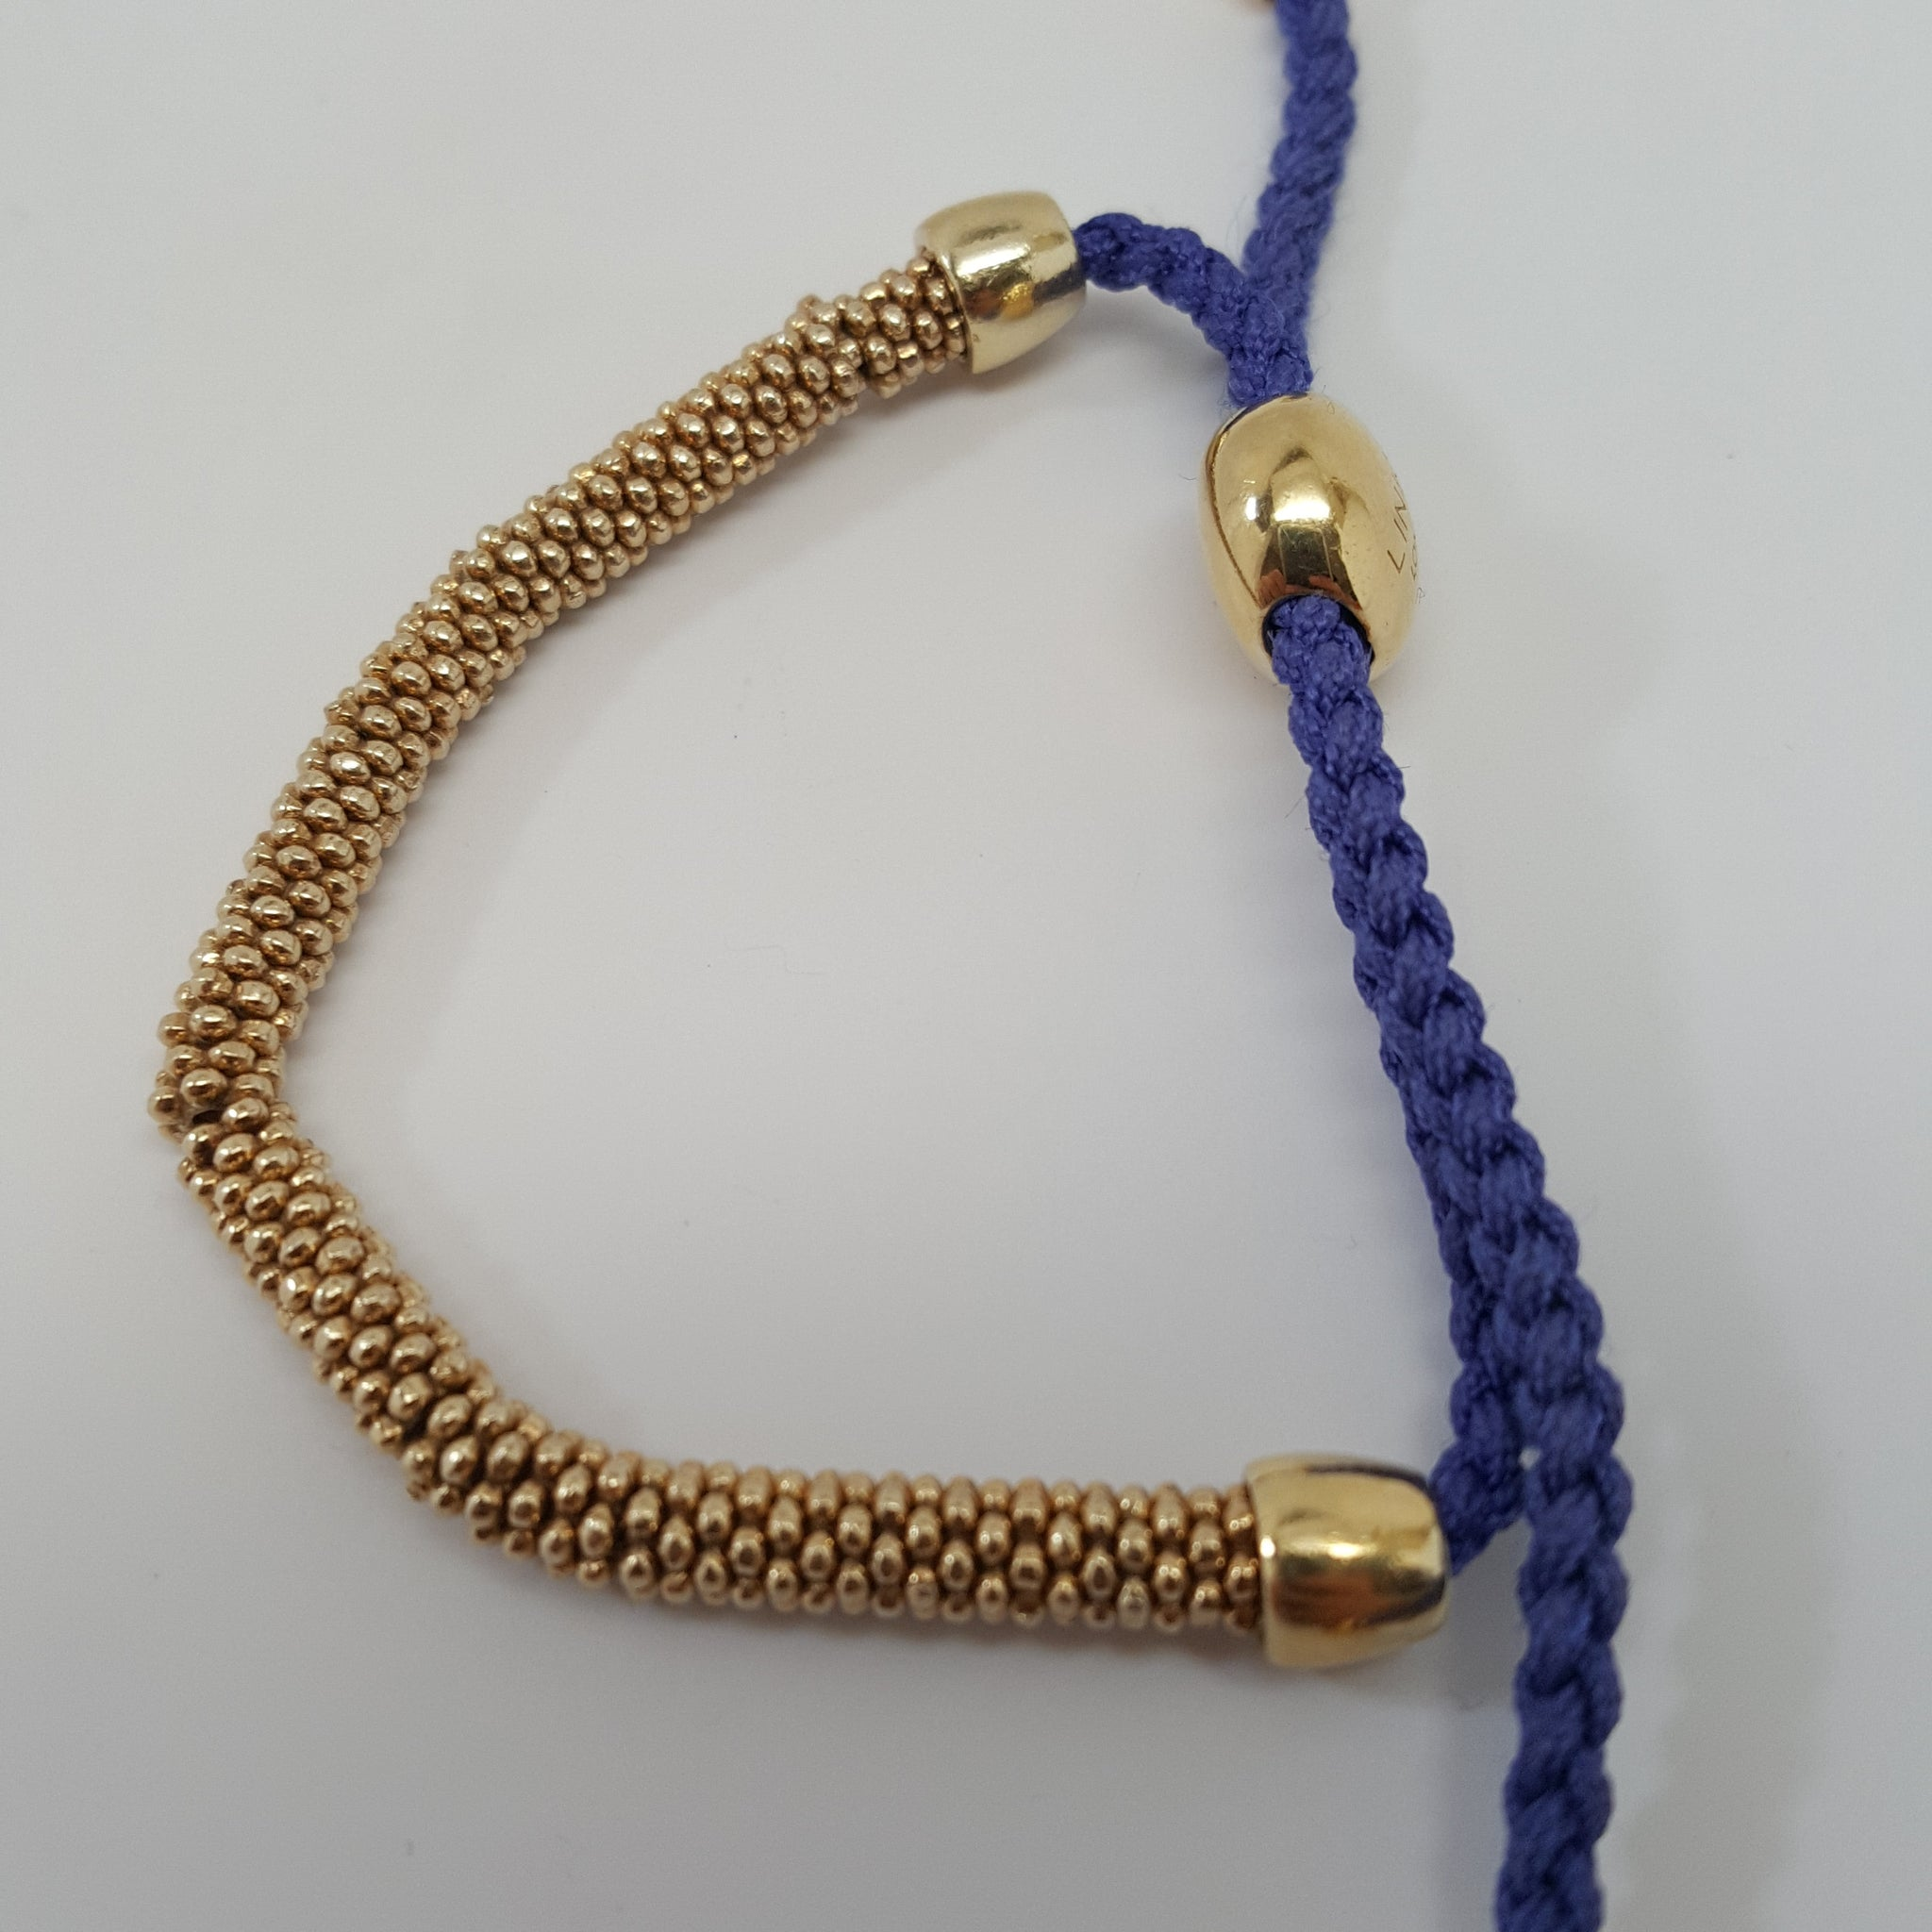 LINKS OF LONDON XS EFFERVESCENCE GOLD VERMEIL & BLUE VIOLET CORD BRACELET